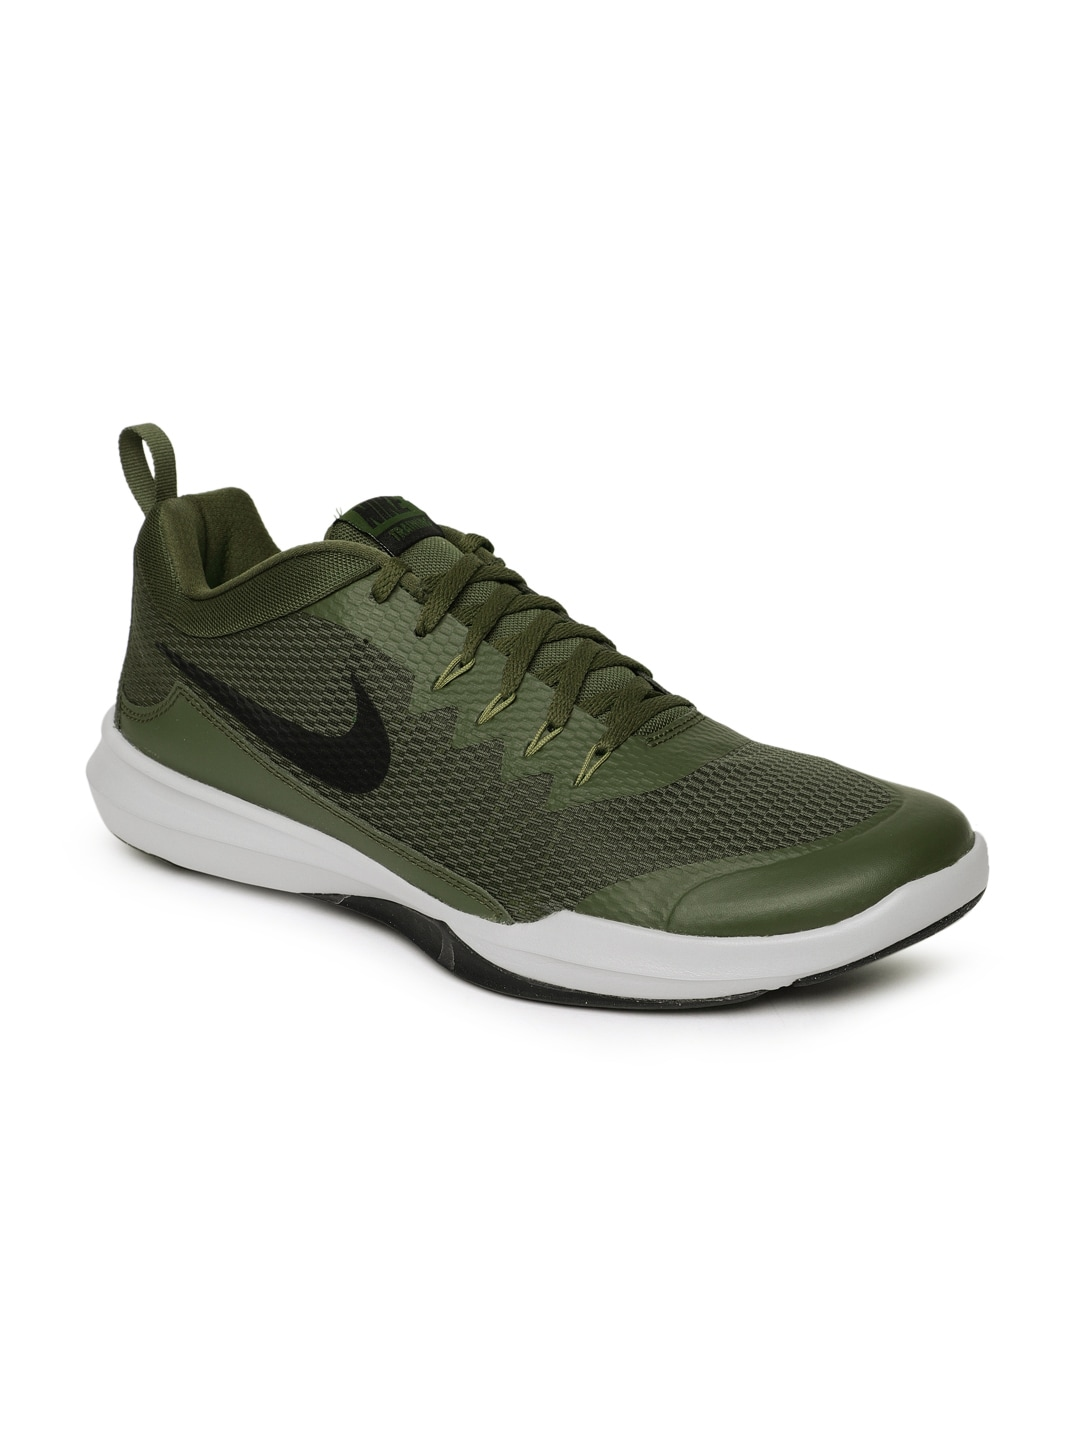 46a834036215d Nike Shoes - Buy Nike Shoes for Men